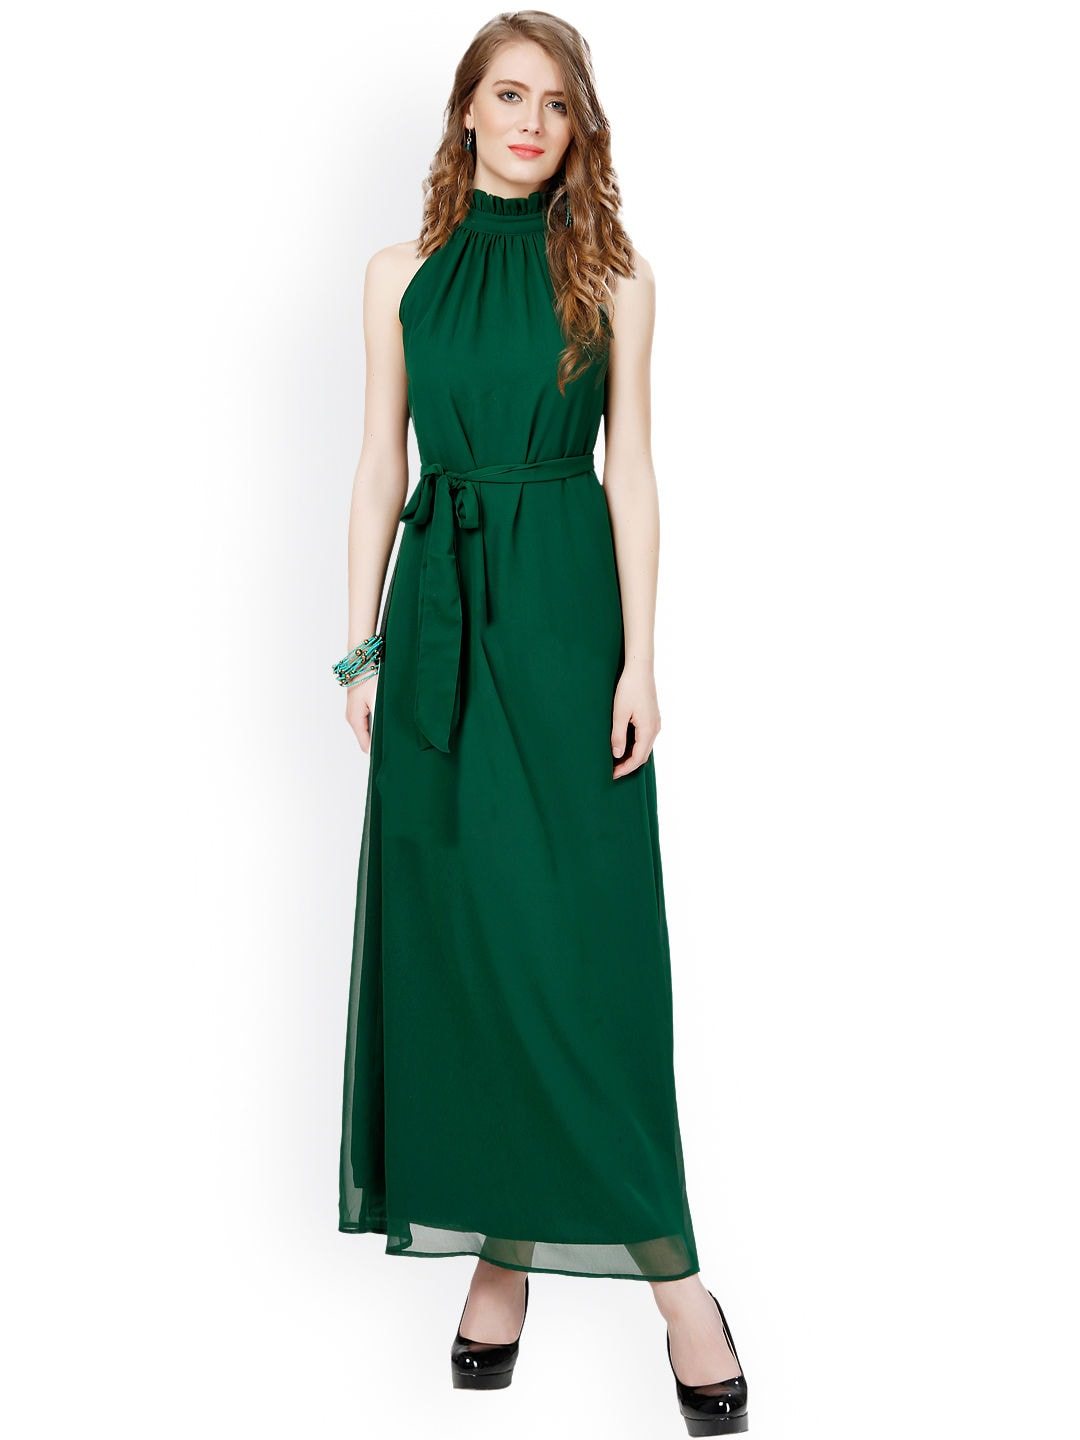 a7d40efe2a2 Eavan Dress - Buy Eavan Dresses